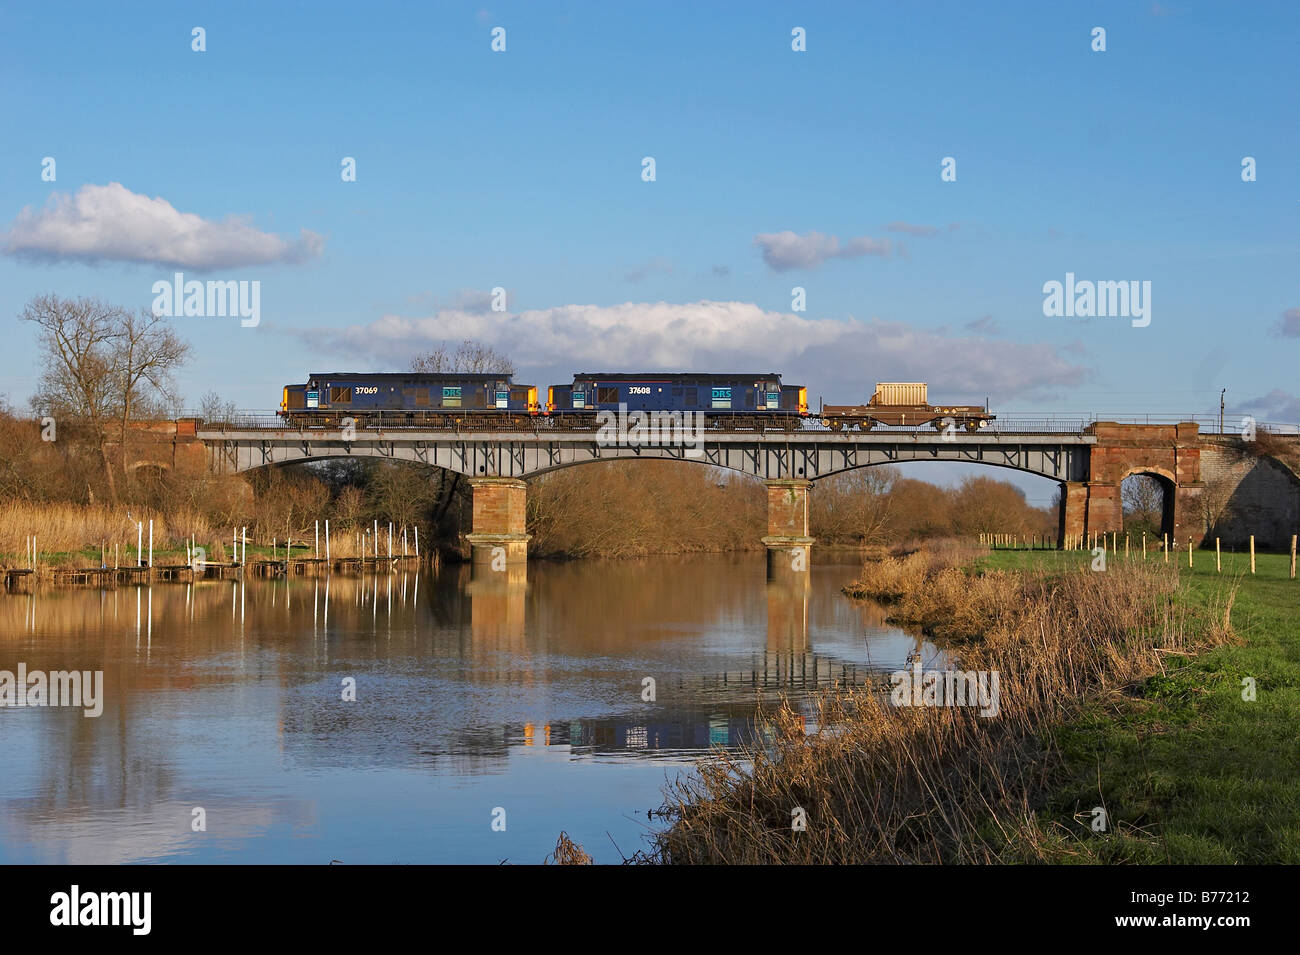 DRS Nuclear Waste train passes over the river Avon in Worcestershire. - Stock Image